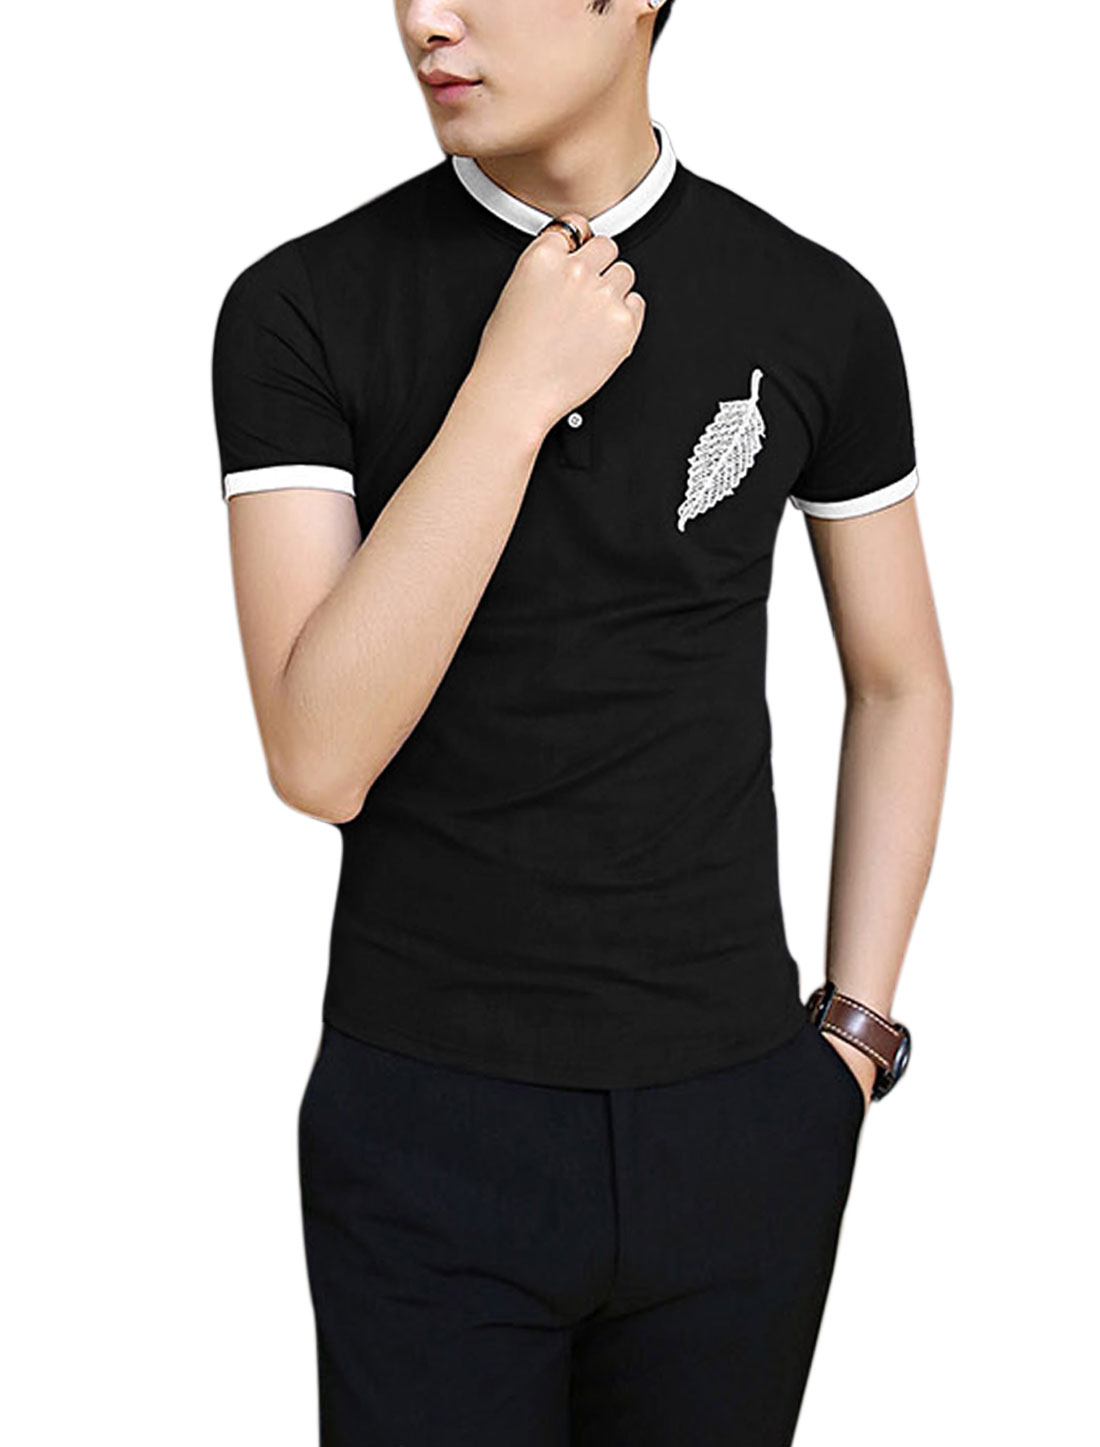 Men Convertible Collar Leaf Embroidery Slim Fit Chic Polo Shirt Black M